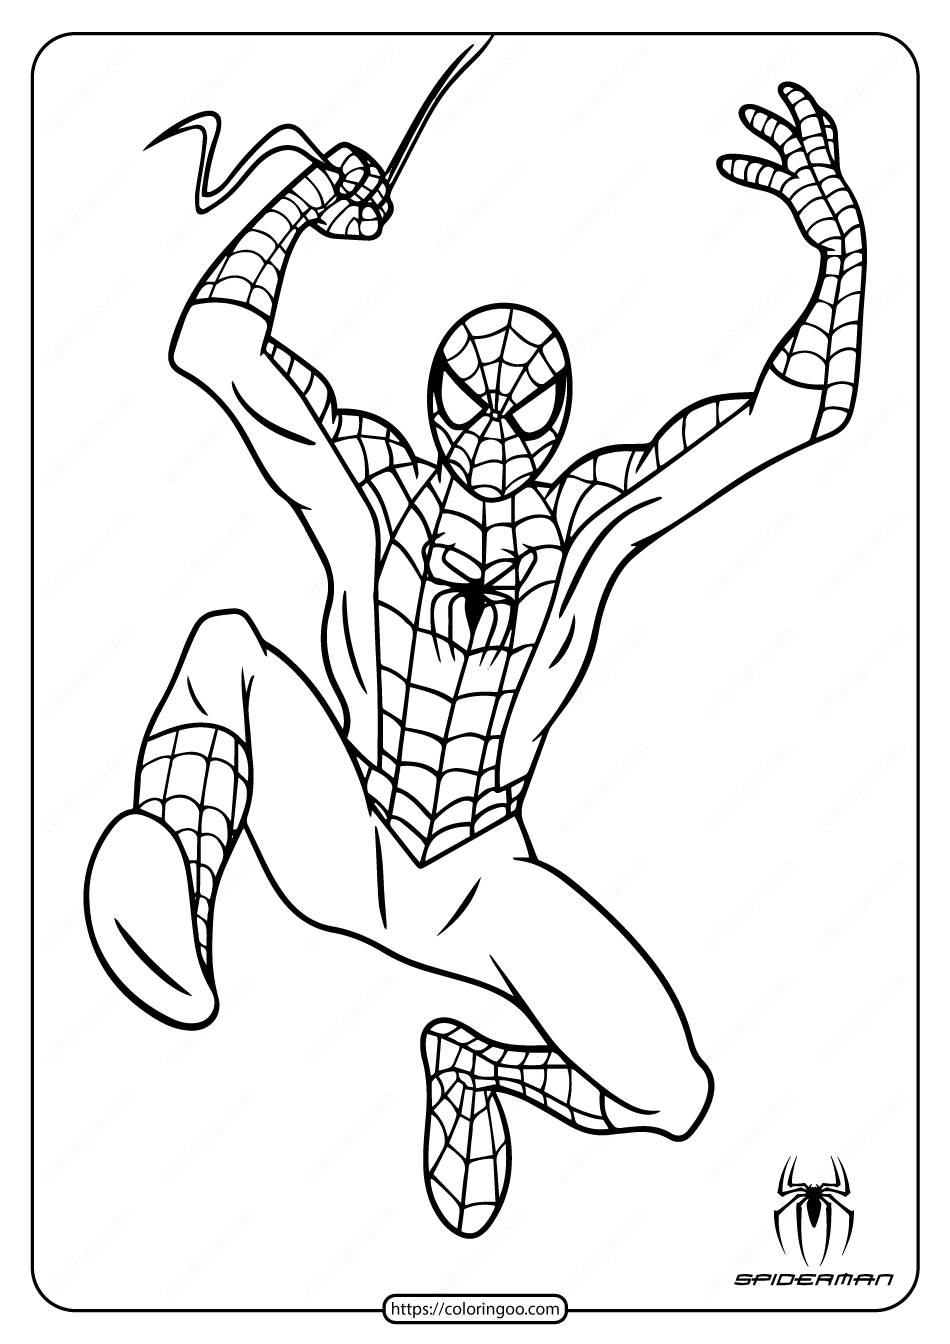 spiderman web coloring pages 57 best spiderman images on pinterest coloring pictures pages spiderman web coloring